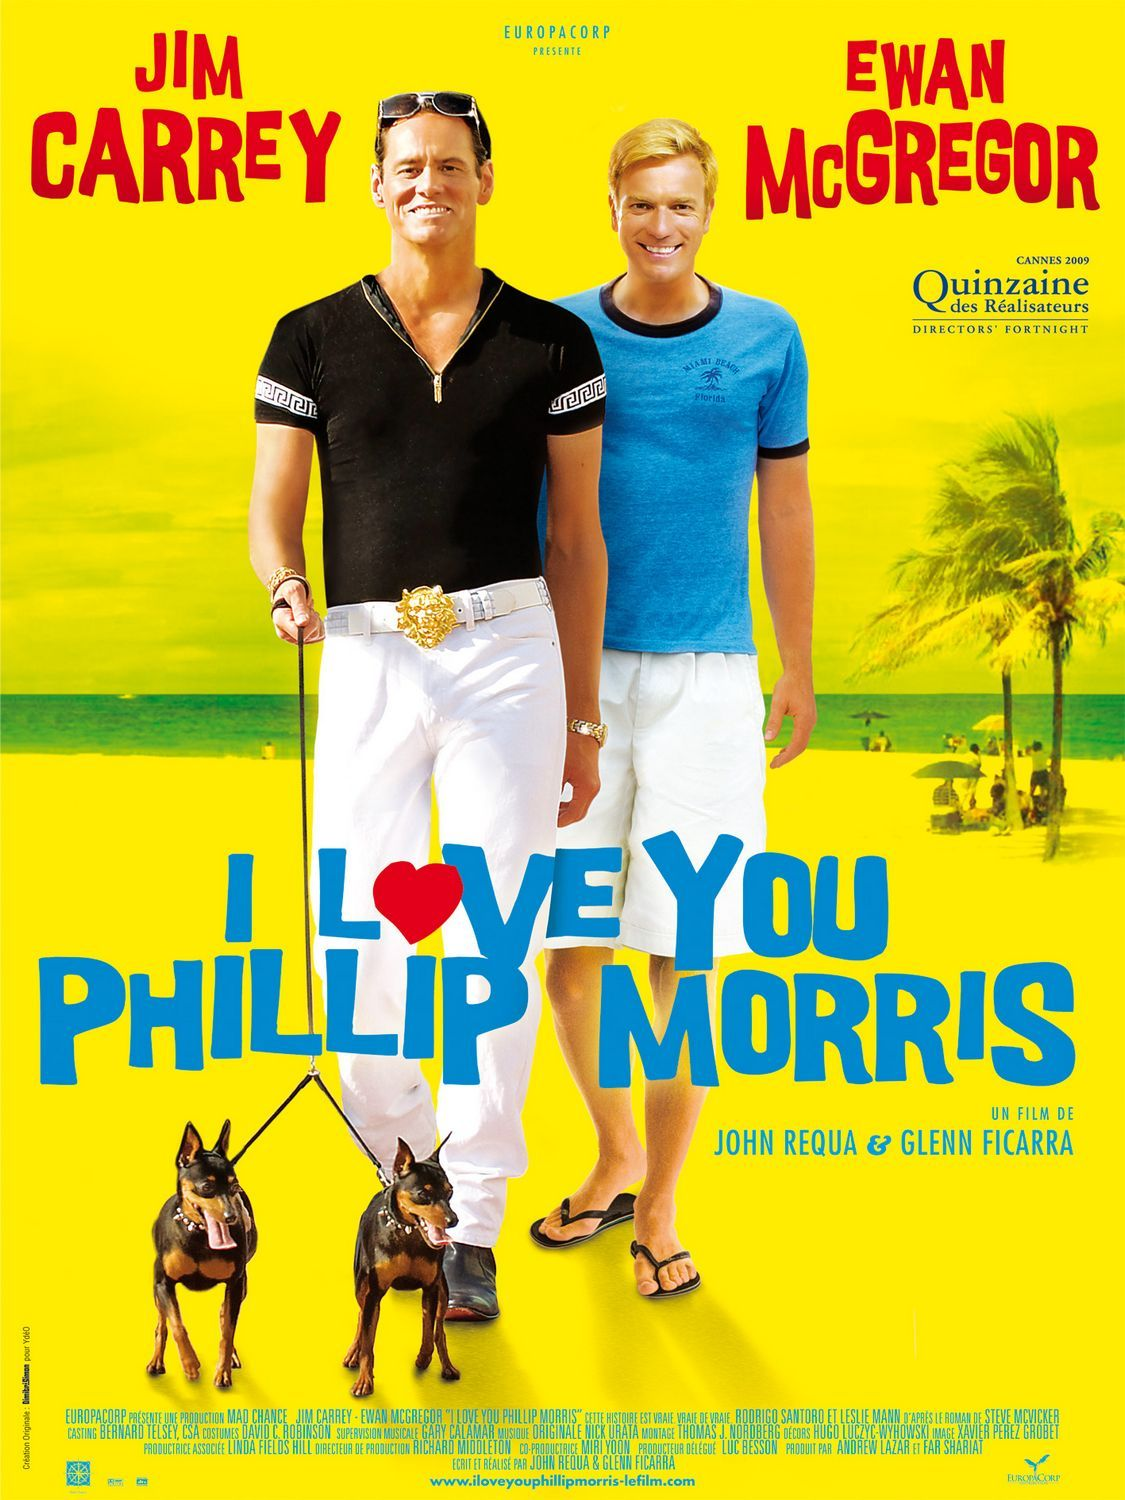 I Love You Philip Morris This Film Is One Of The Funiest Things Ive Seen In Years I Love Both Jim Car Peliculas Audio Latino Online Peliculas Cine Peliculas